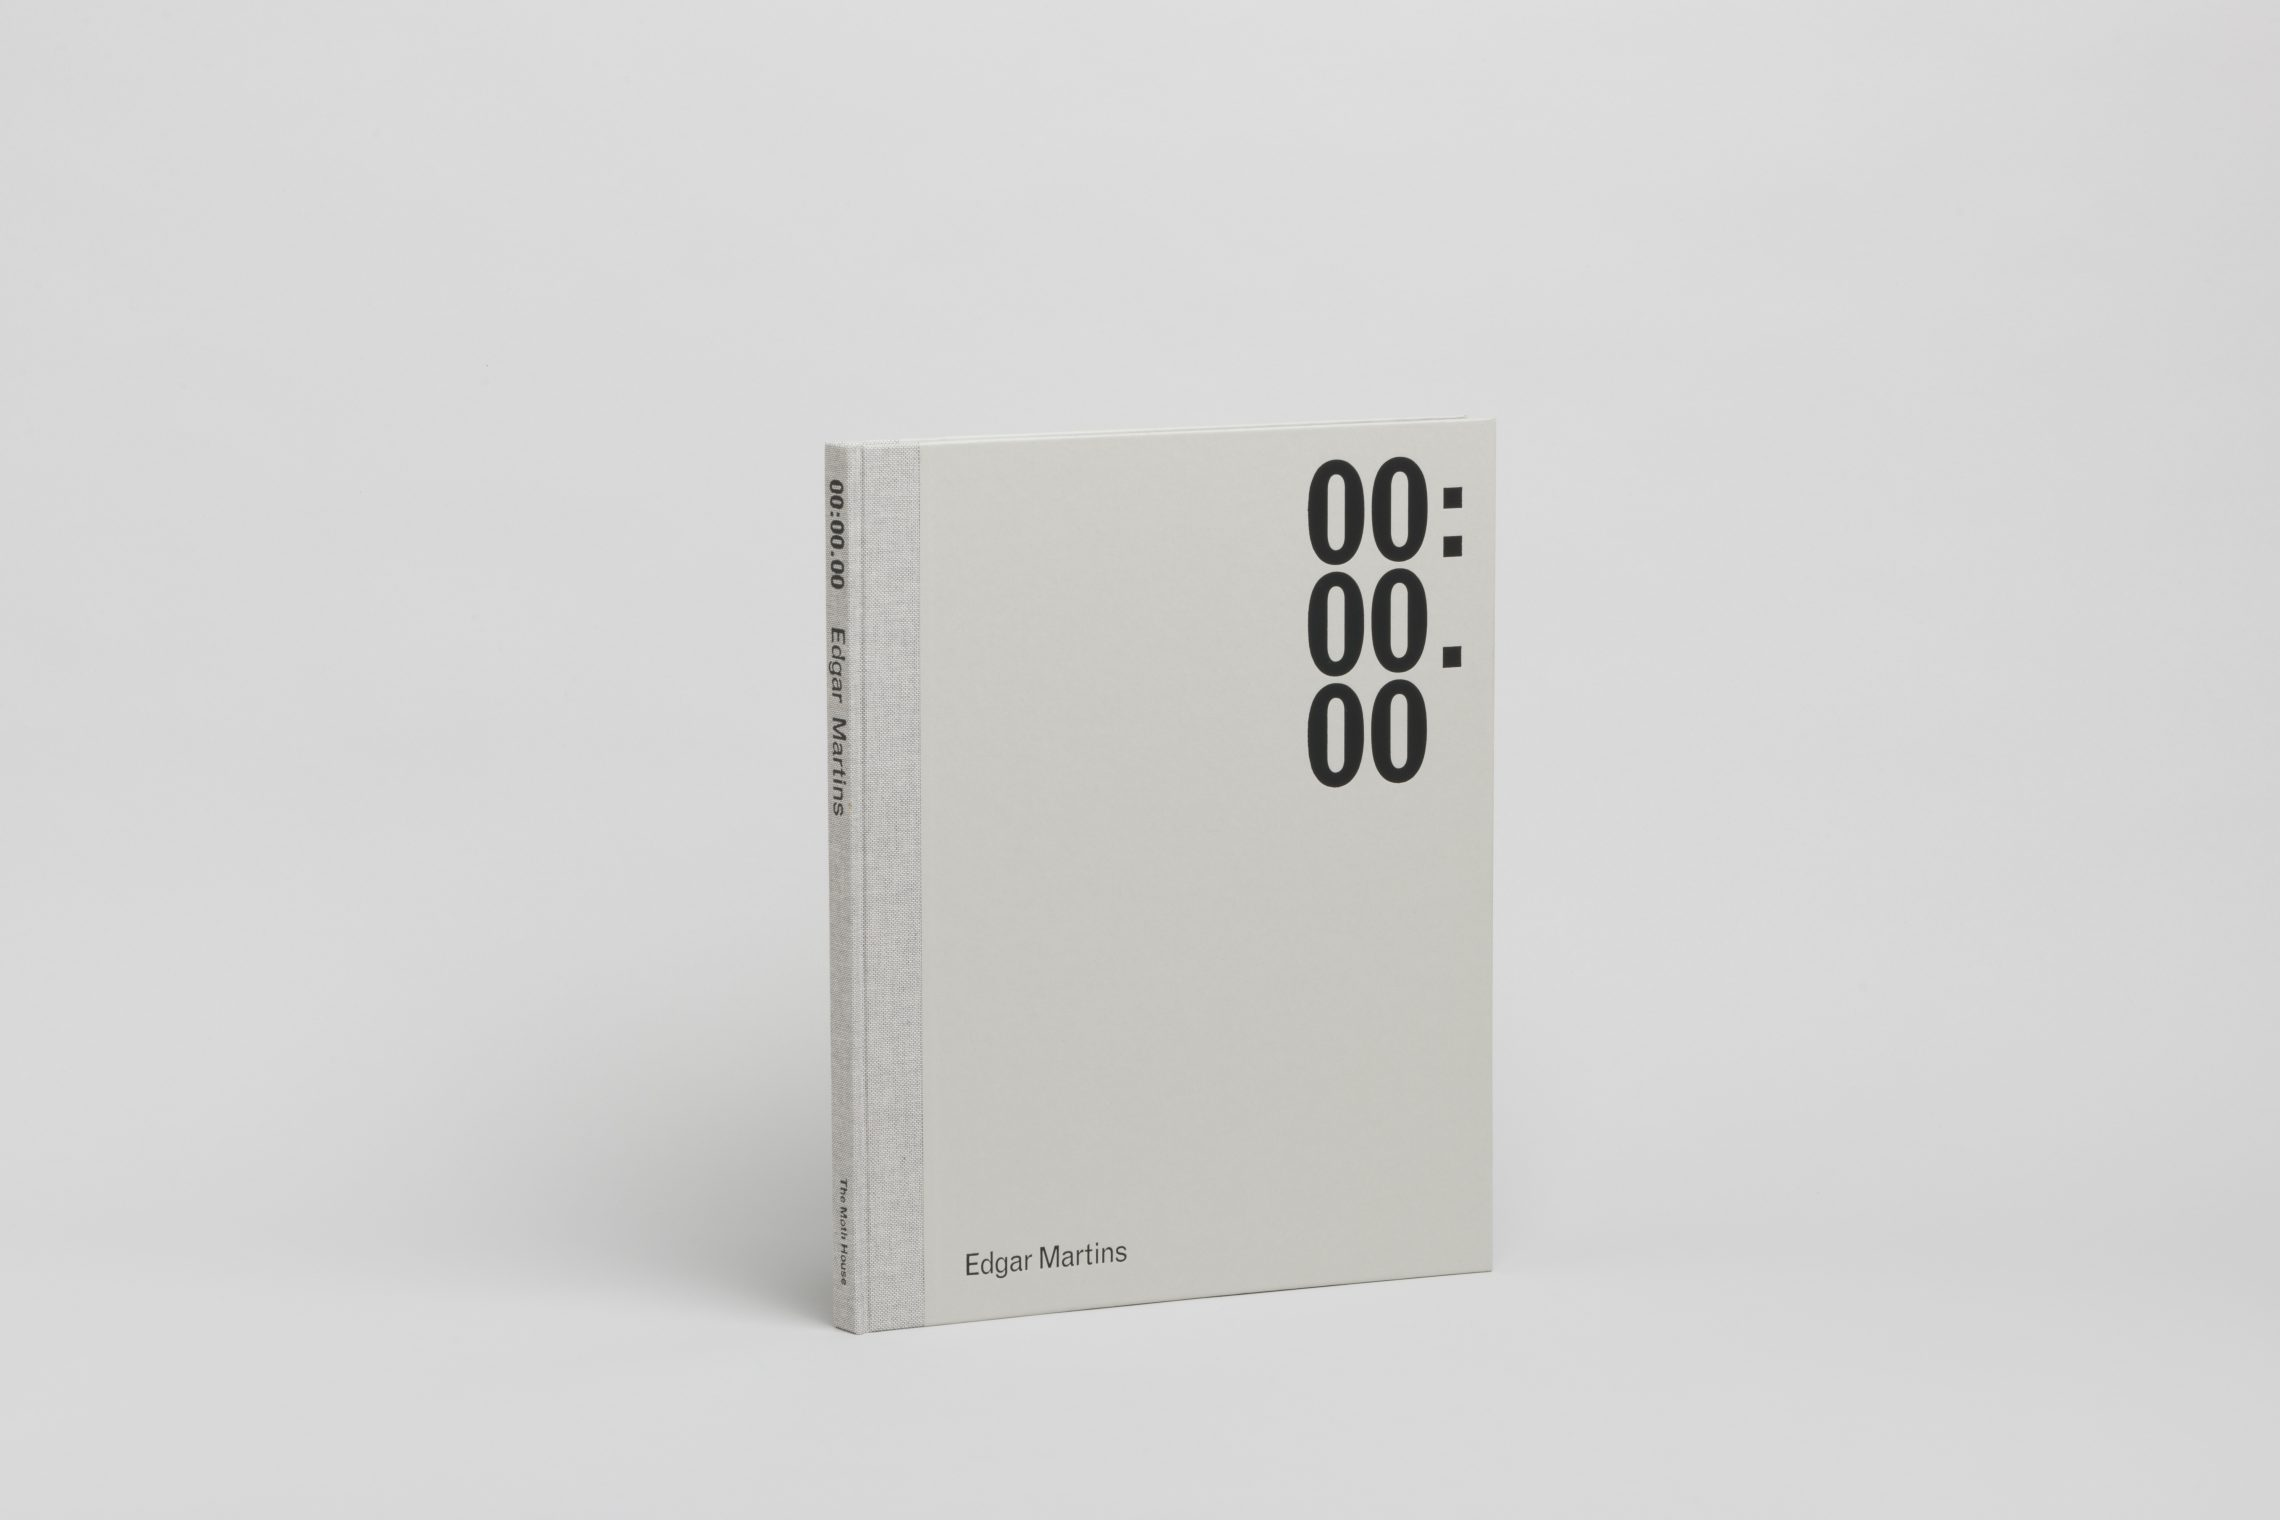 00:00.00, a forthcoming book by Edgar Martins